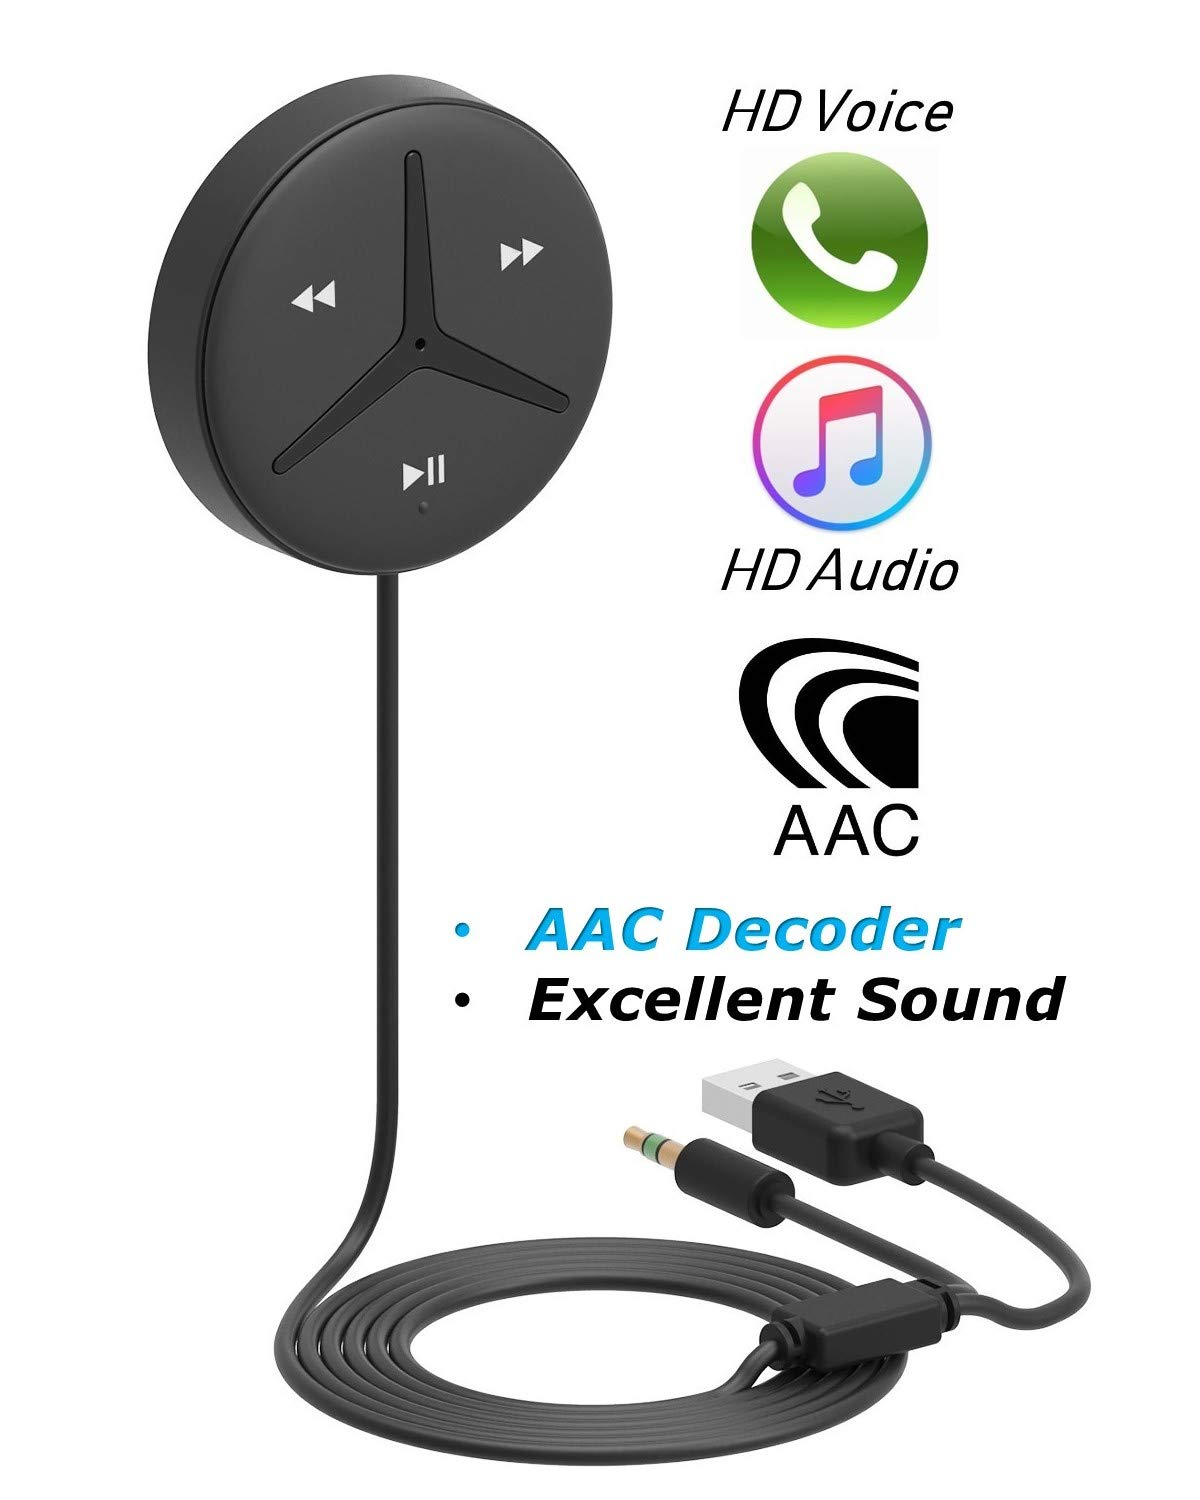 [Upgraded] Aston SoundTek A1+,Excellent Sound,3.5mm Aux Bluetooth Receiver,Car Handsfree,AAC Codec,Music Streaming for Car and Home Theater,Voice Assistant,Auto On,Multi-Point,Build-in Noise Isolator by Aston Innovations